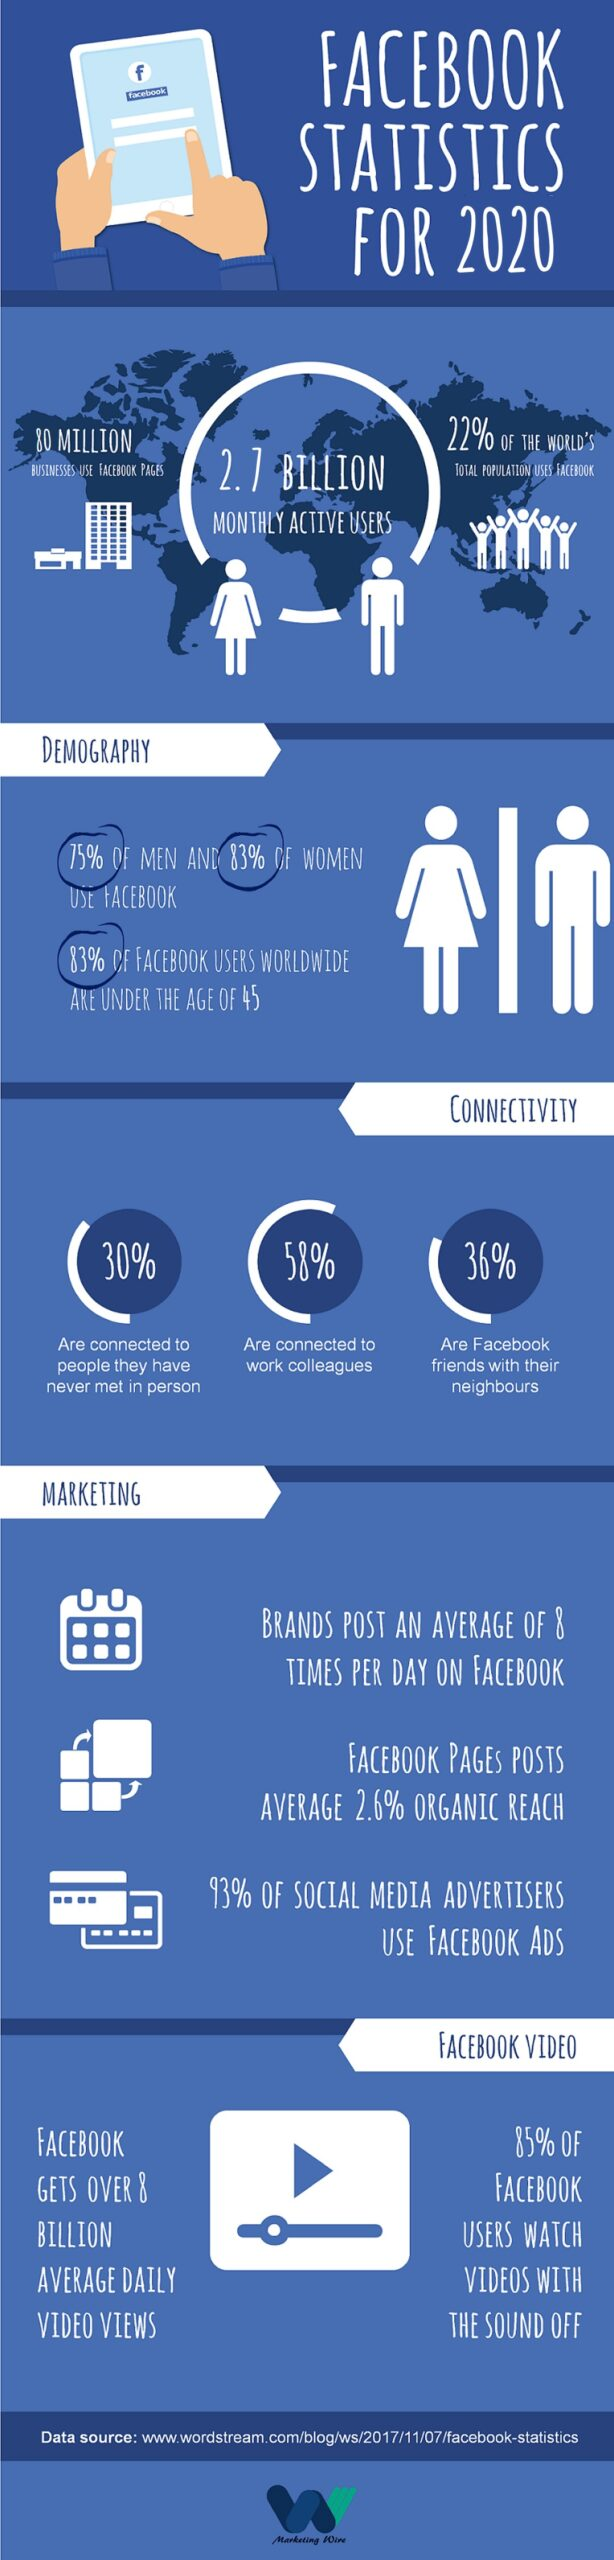 Eye-Opening-Facebook-Statistics-for-2020-for-all-marketers-Infographic